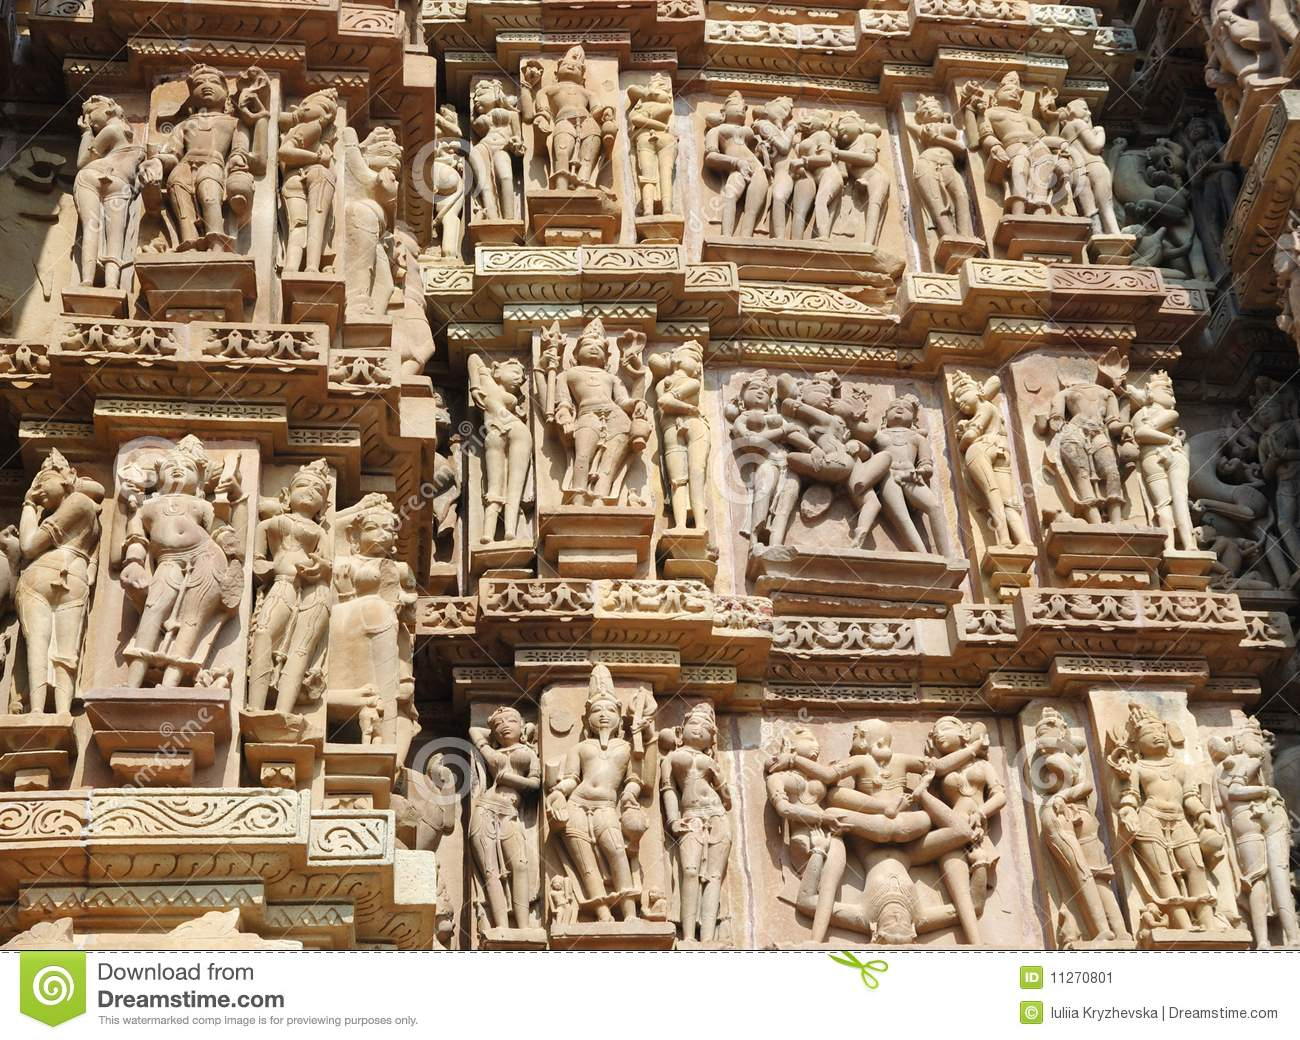 Famous kamasutra scenes on the wall of hindu temple in Khajuraho.These